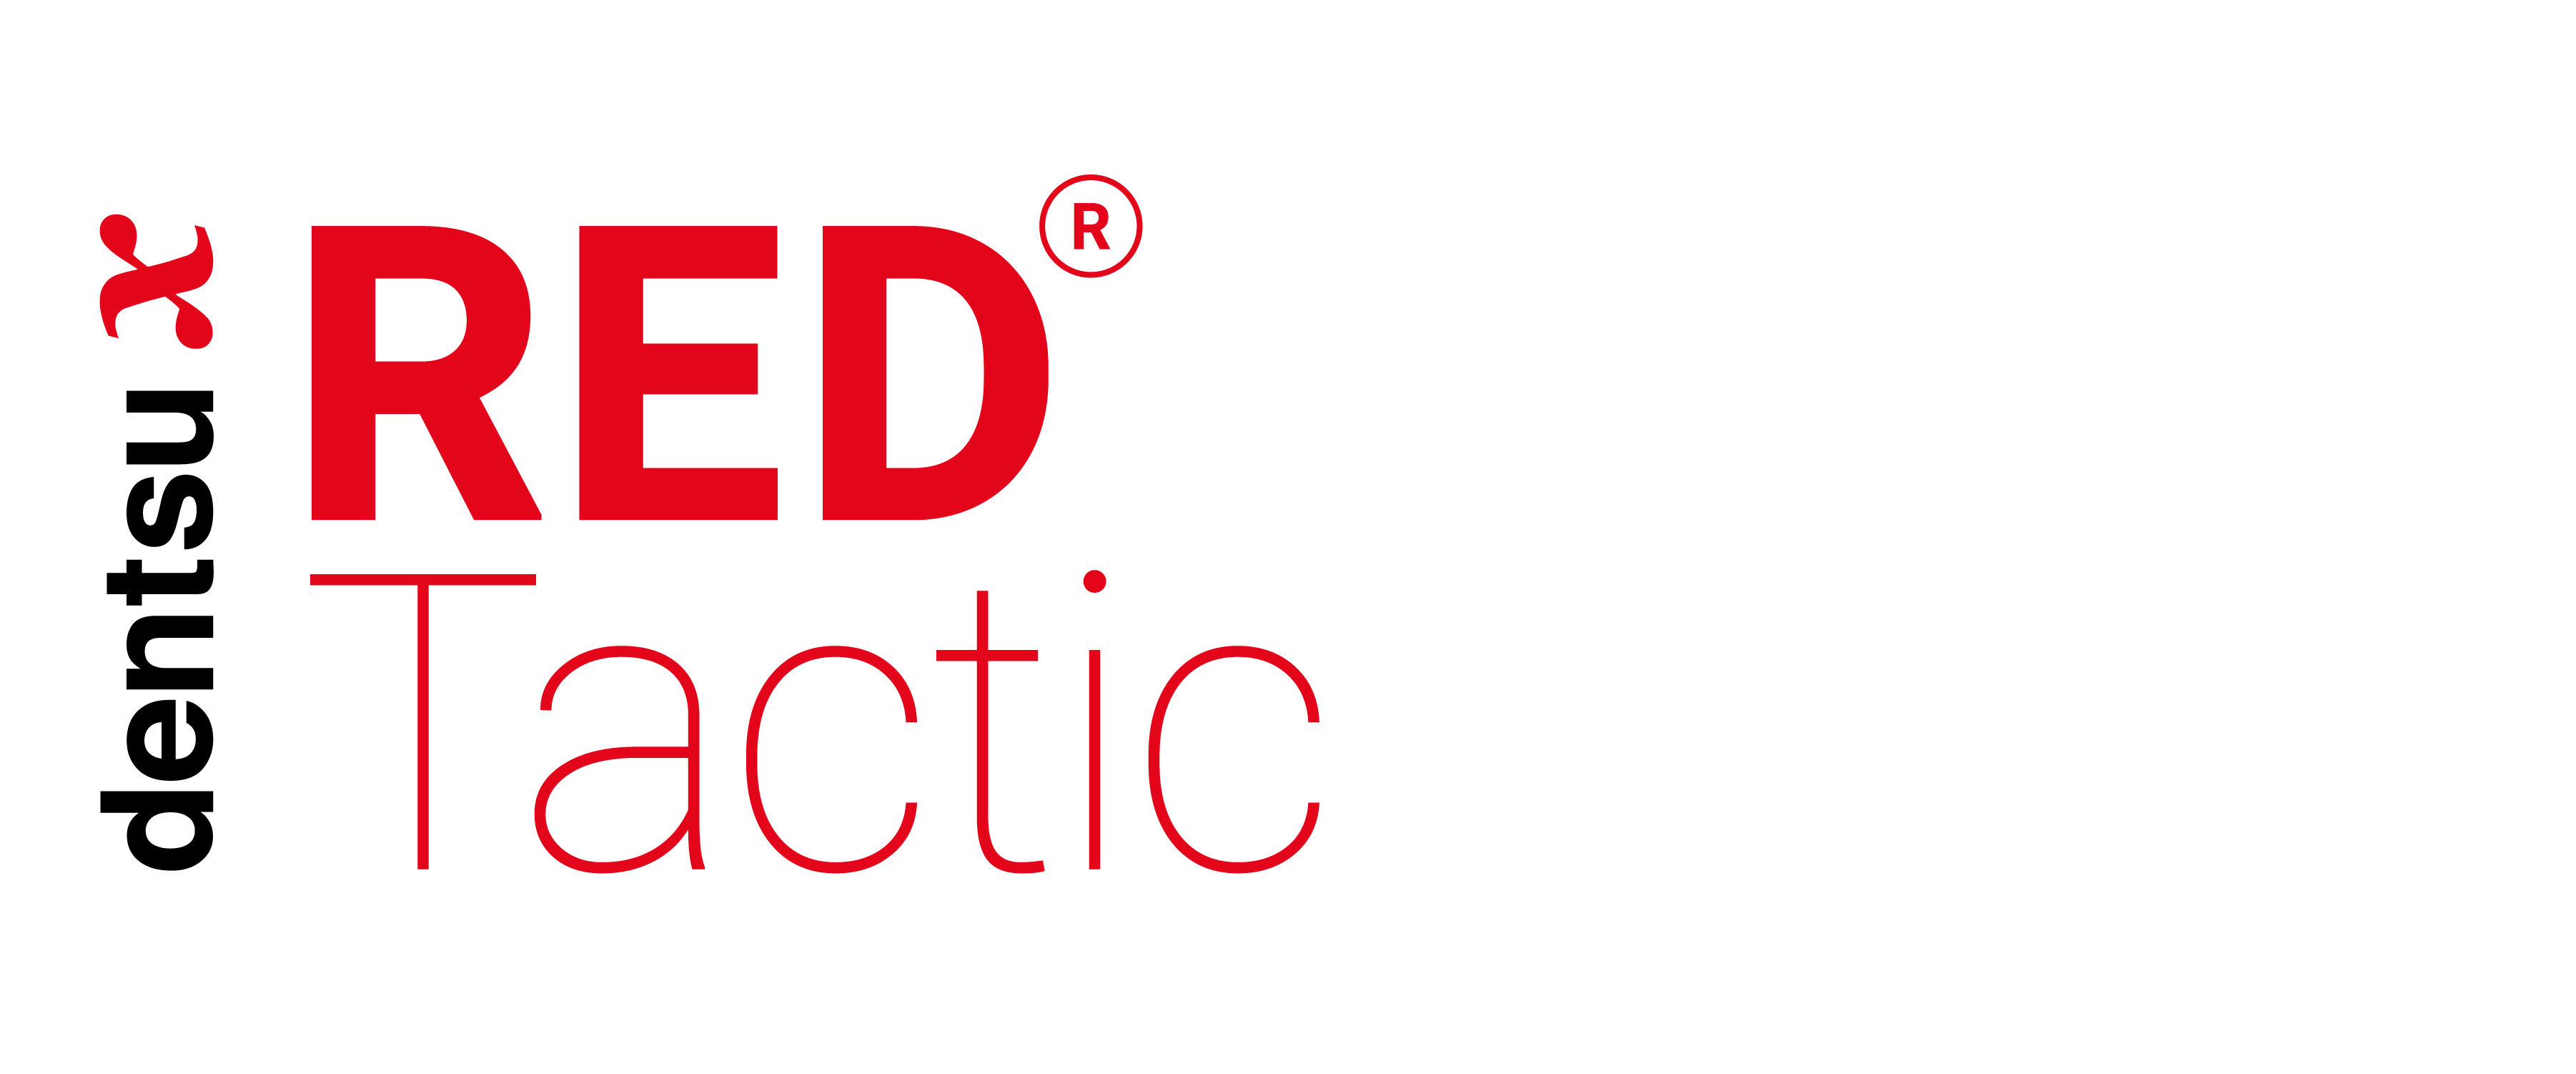 Red Tactic logo